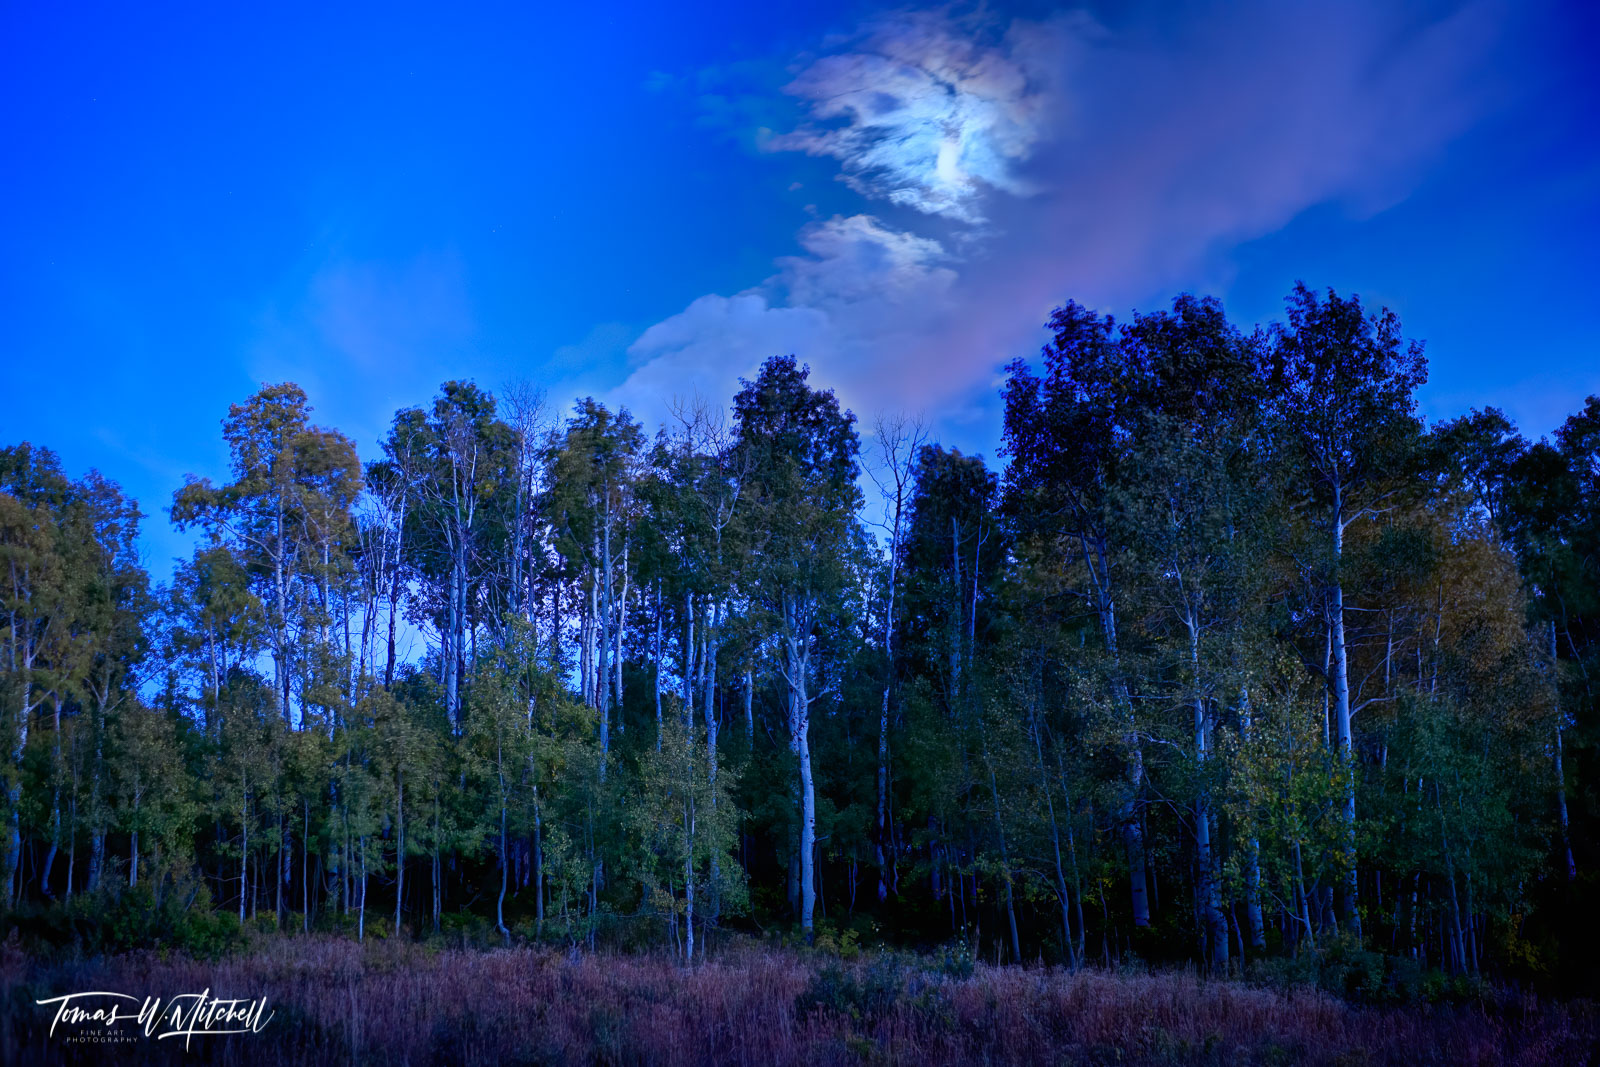 limited edition, museum grade, fine art, prints, moon glow, alpine loop, utah, moon, clouds, autumn, blue sky, forest, quaking aspens, leaves, red, yellow, photograph, photo